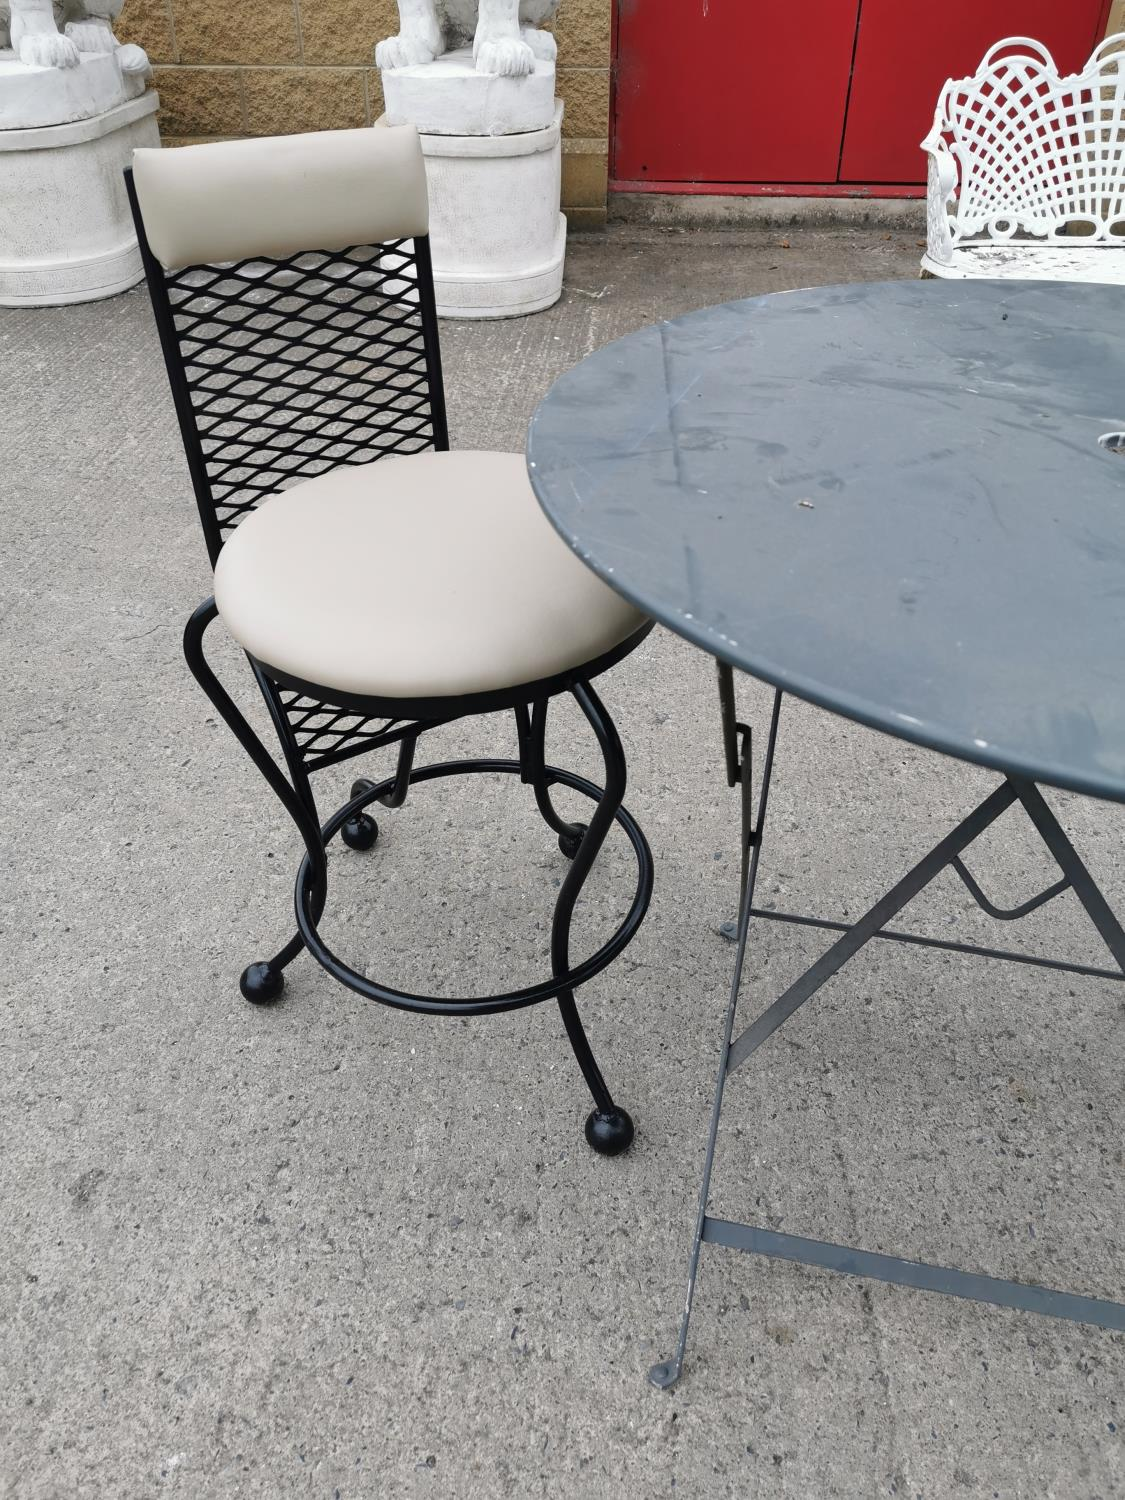 Wrought iron garden table and two chairs. - Image 2 of 3